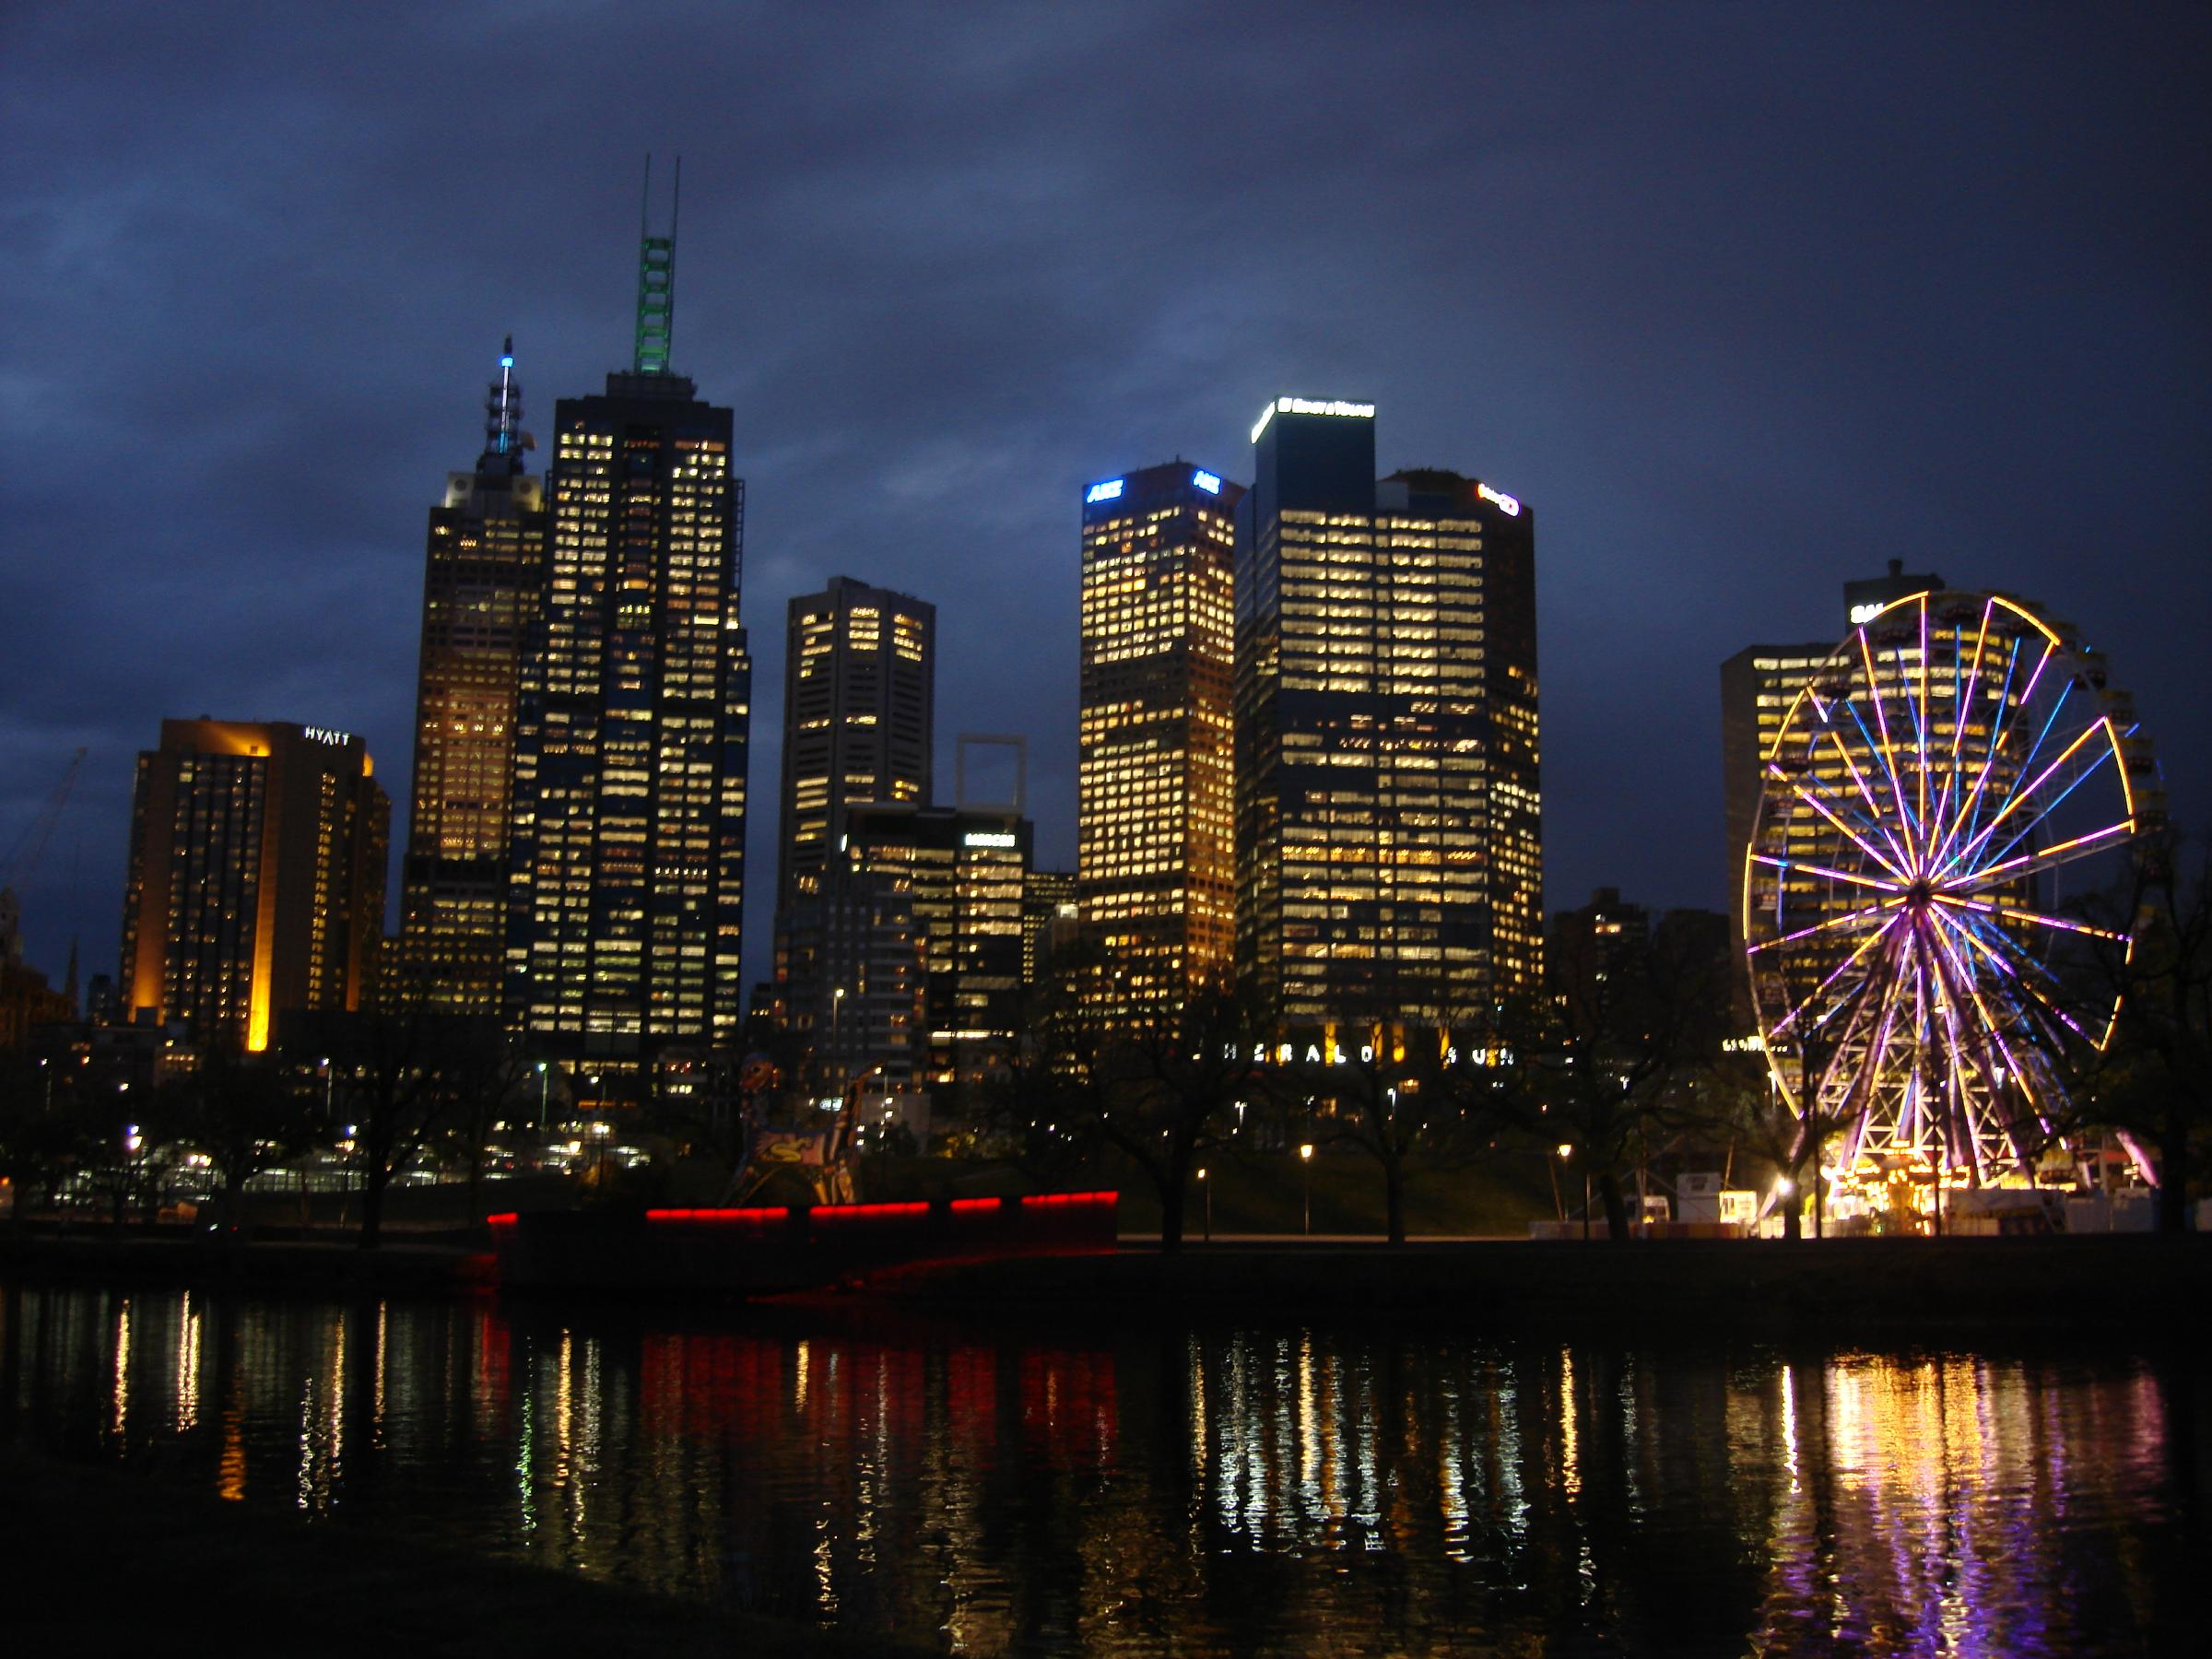 Melbourne_CBD_and_the_Yarra_river_at_dusk_-_Australia